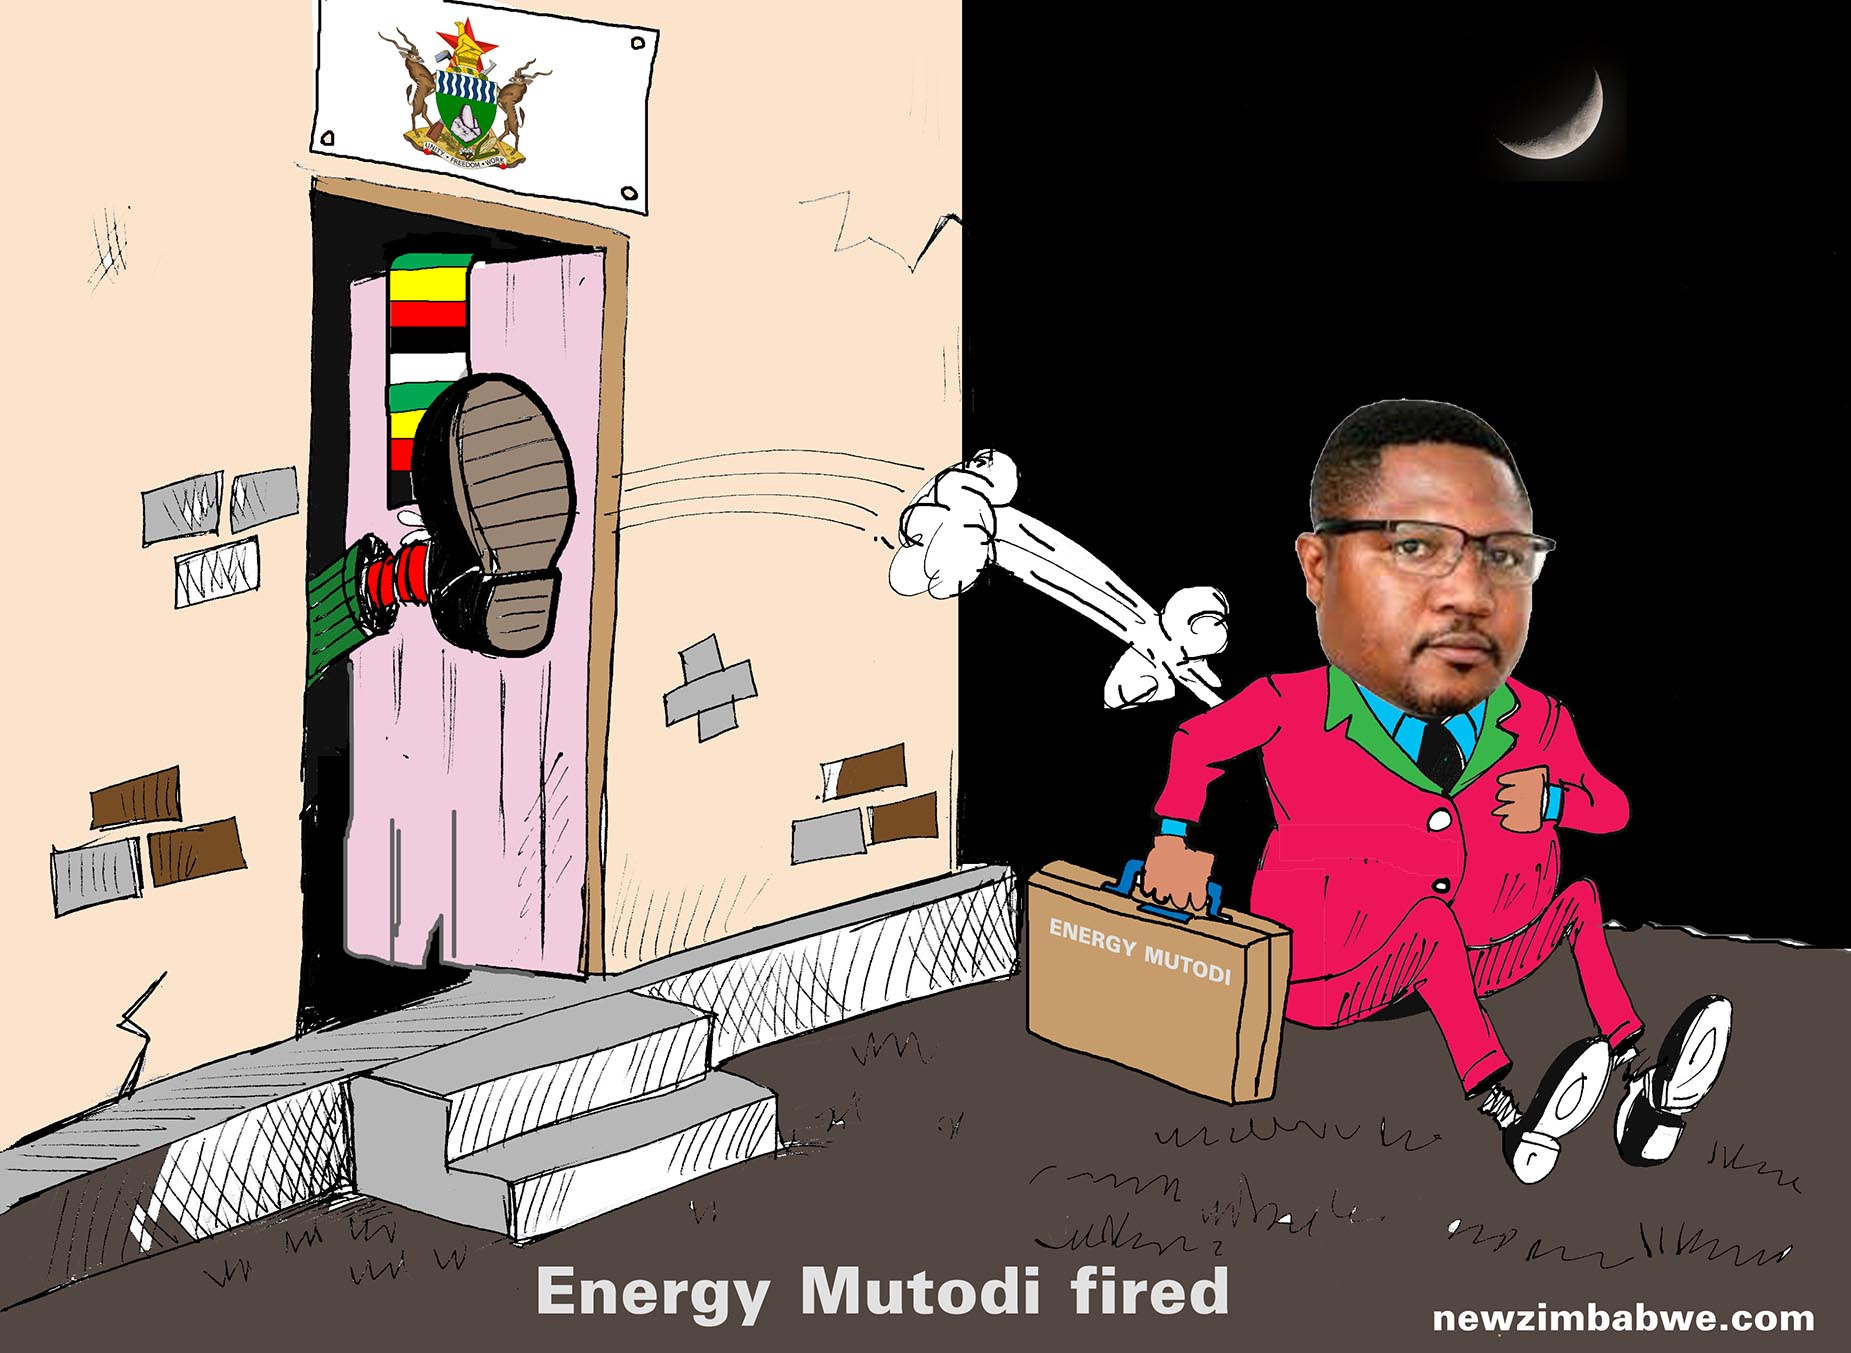 Energy Mutodi fired